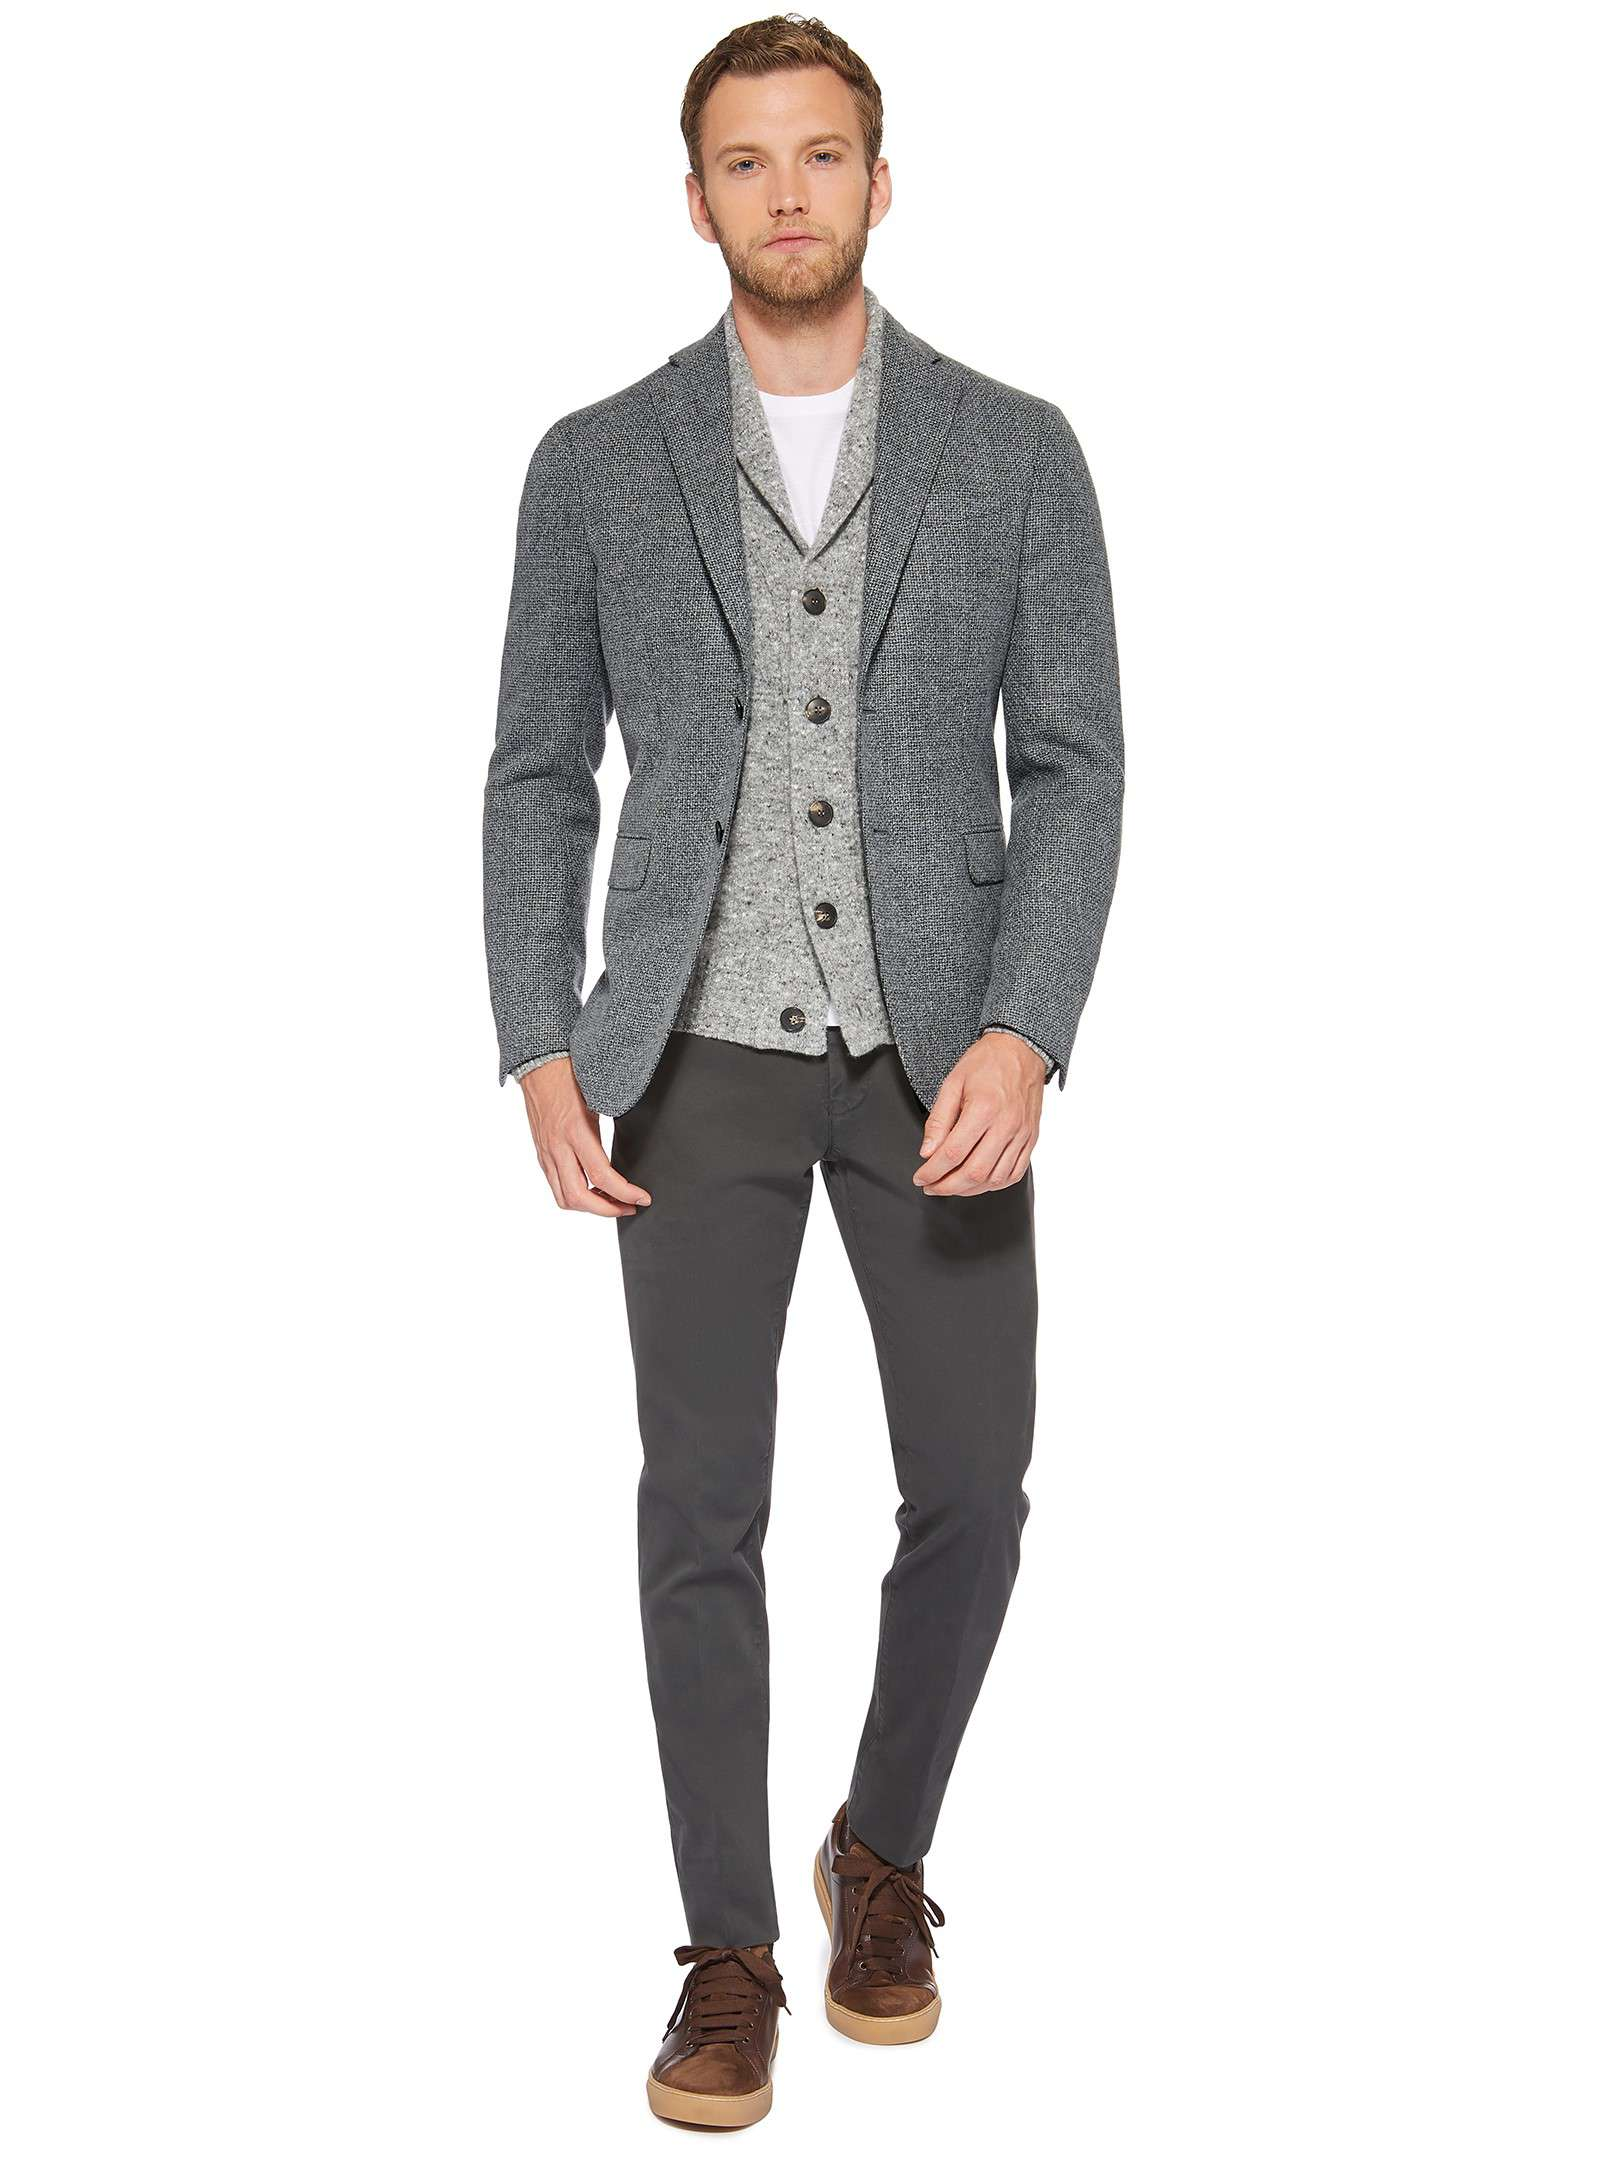 Grey jacket and cardigan